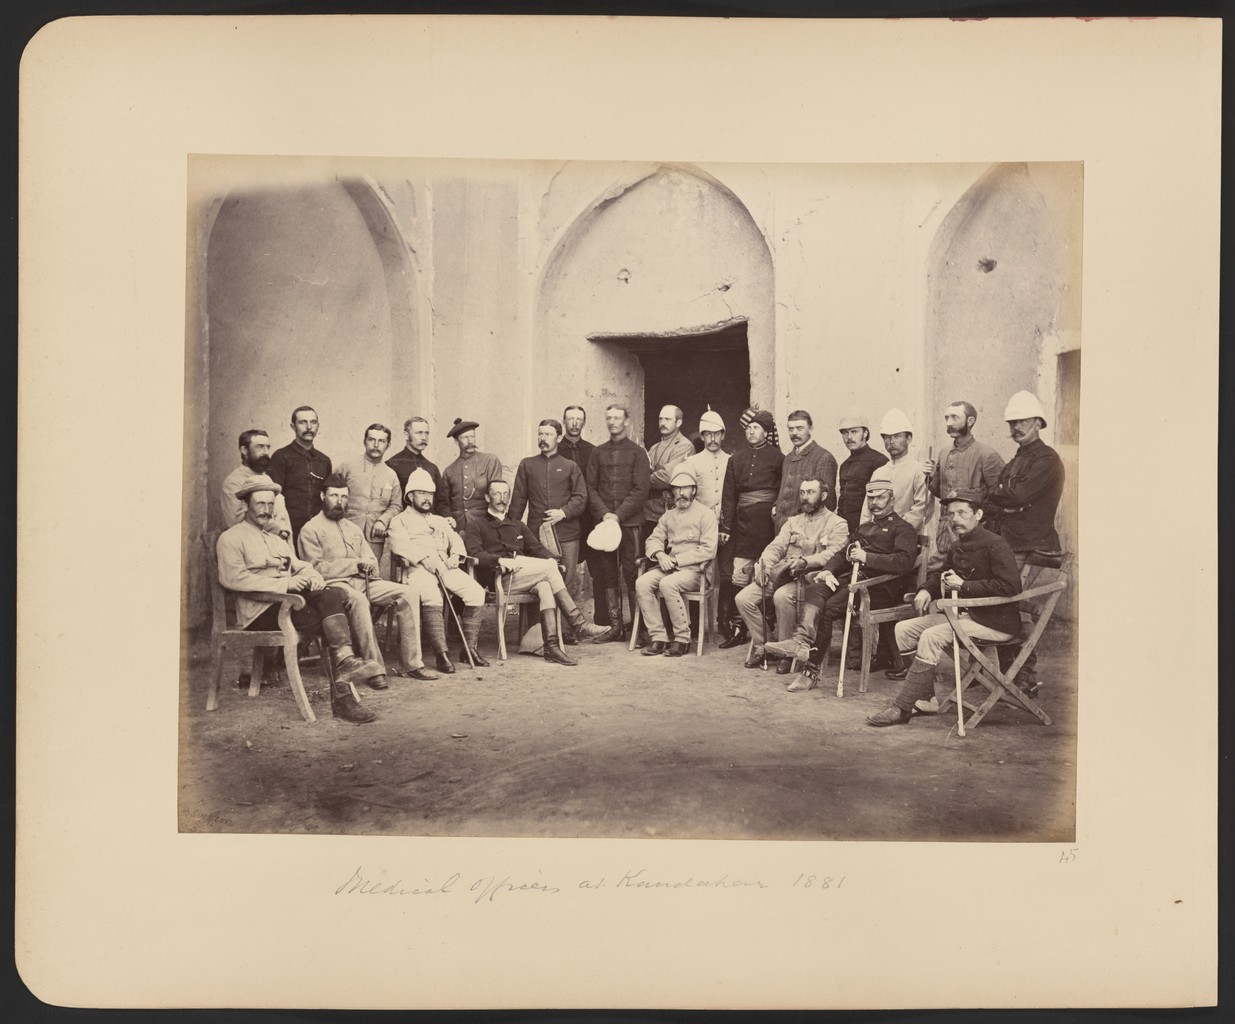 British medical officers of the Southern Afghanistan Field Force in Kandahar, 1881.